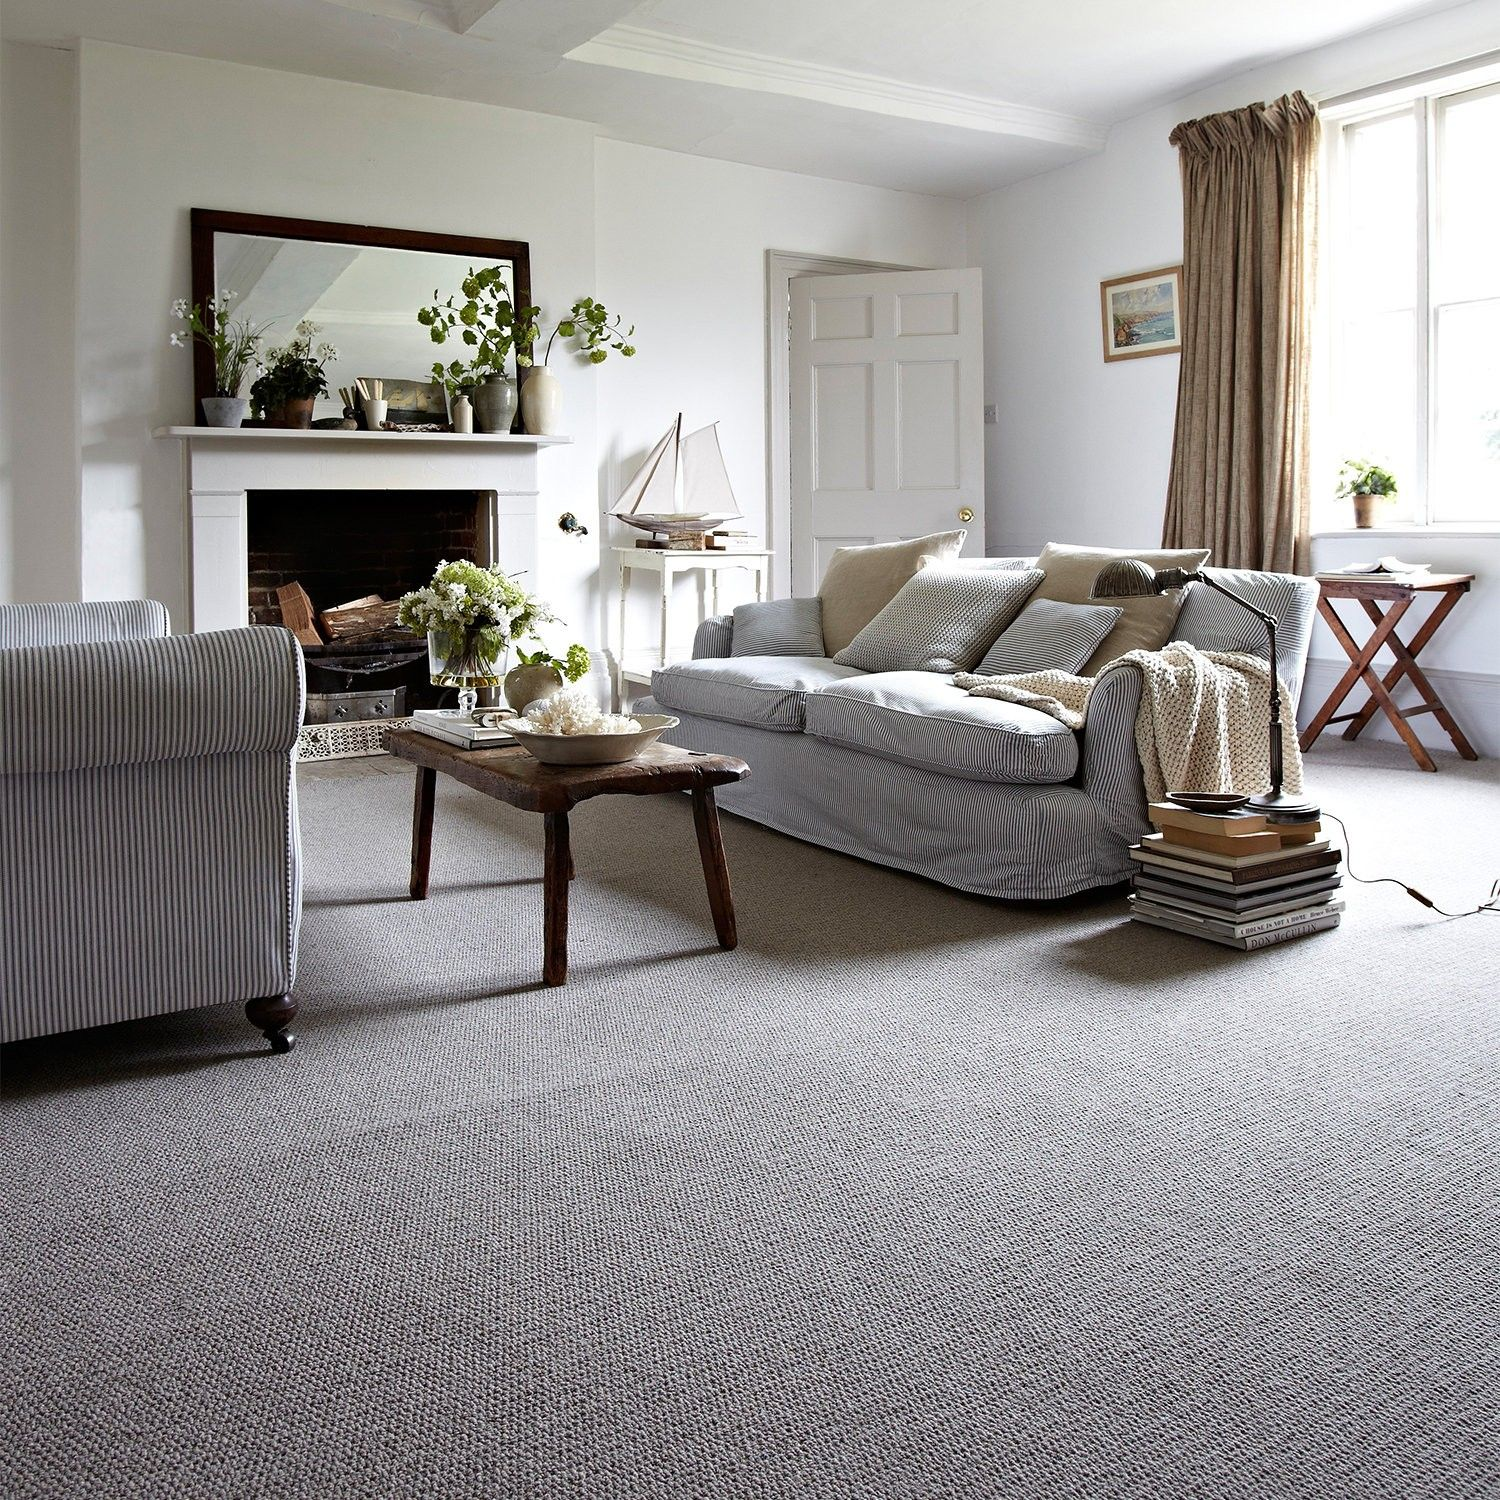 Zanzibar Deluxe Textured Carpet Grey Carpet Living Room Gray Rug Living Room Living Room Carpet